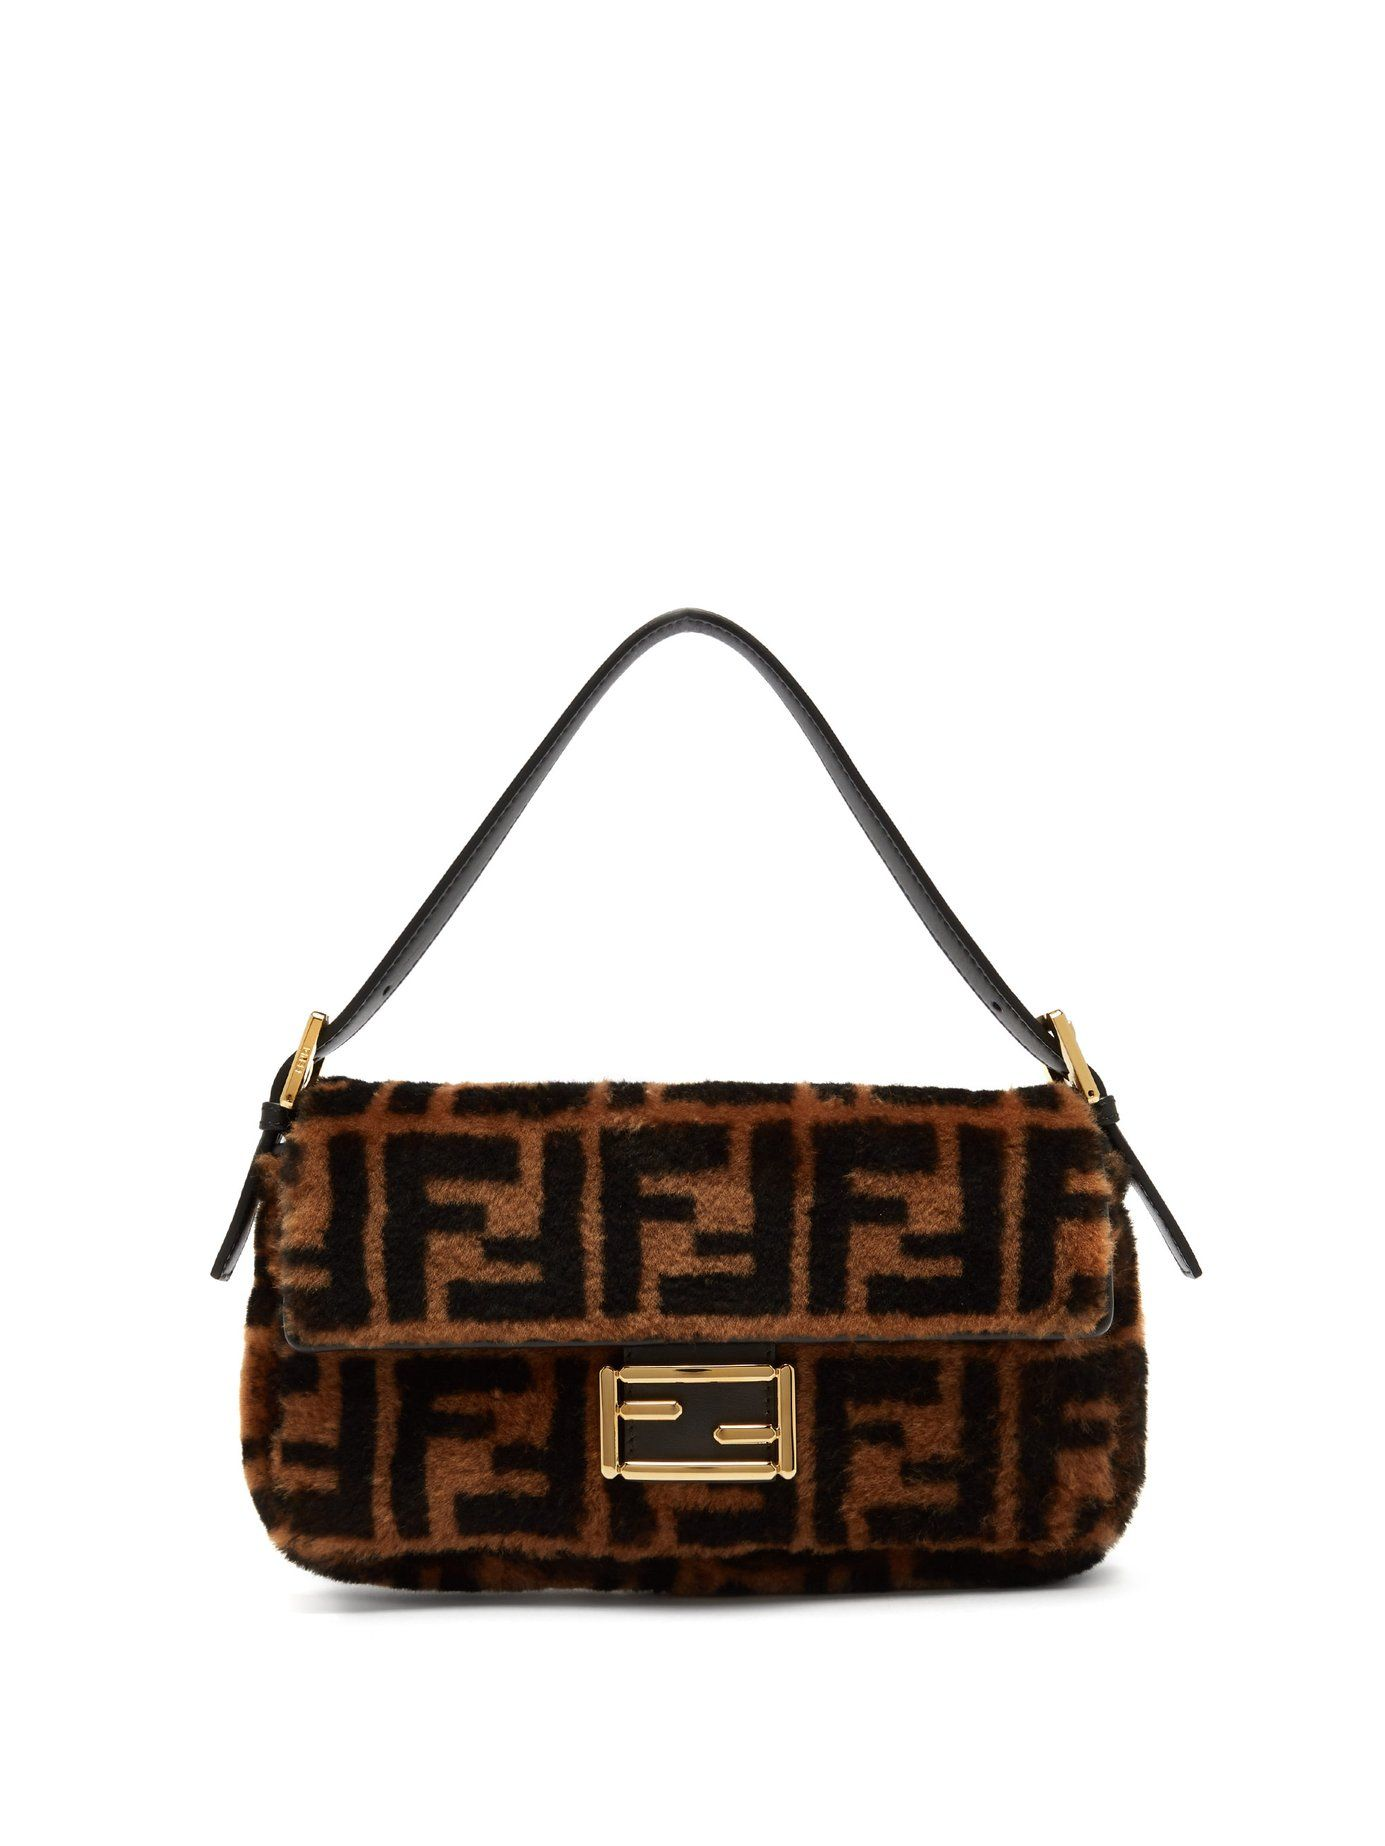 e91115cfe8 Fendi | Womenswear | Shop Online at MATCHESFASHION.COM UK. June 2019.  Baguette logo-print shearling shoulder bag ...